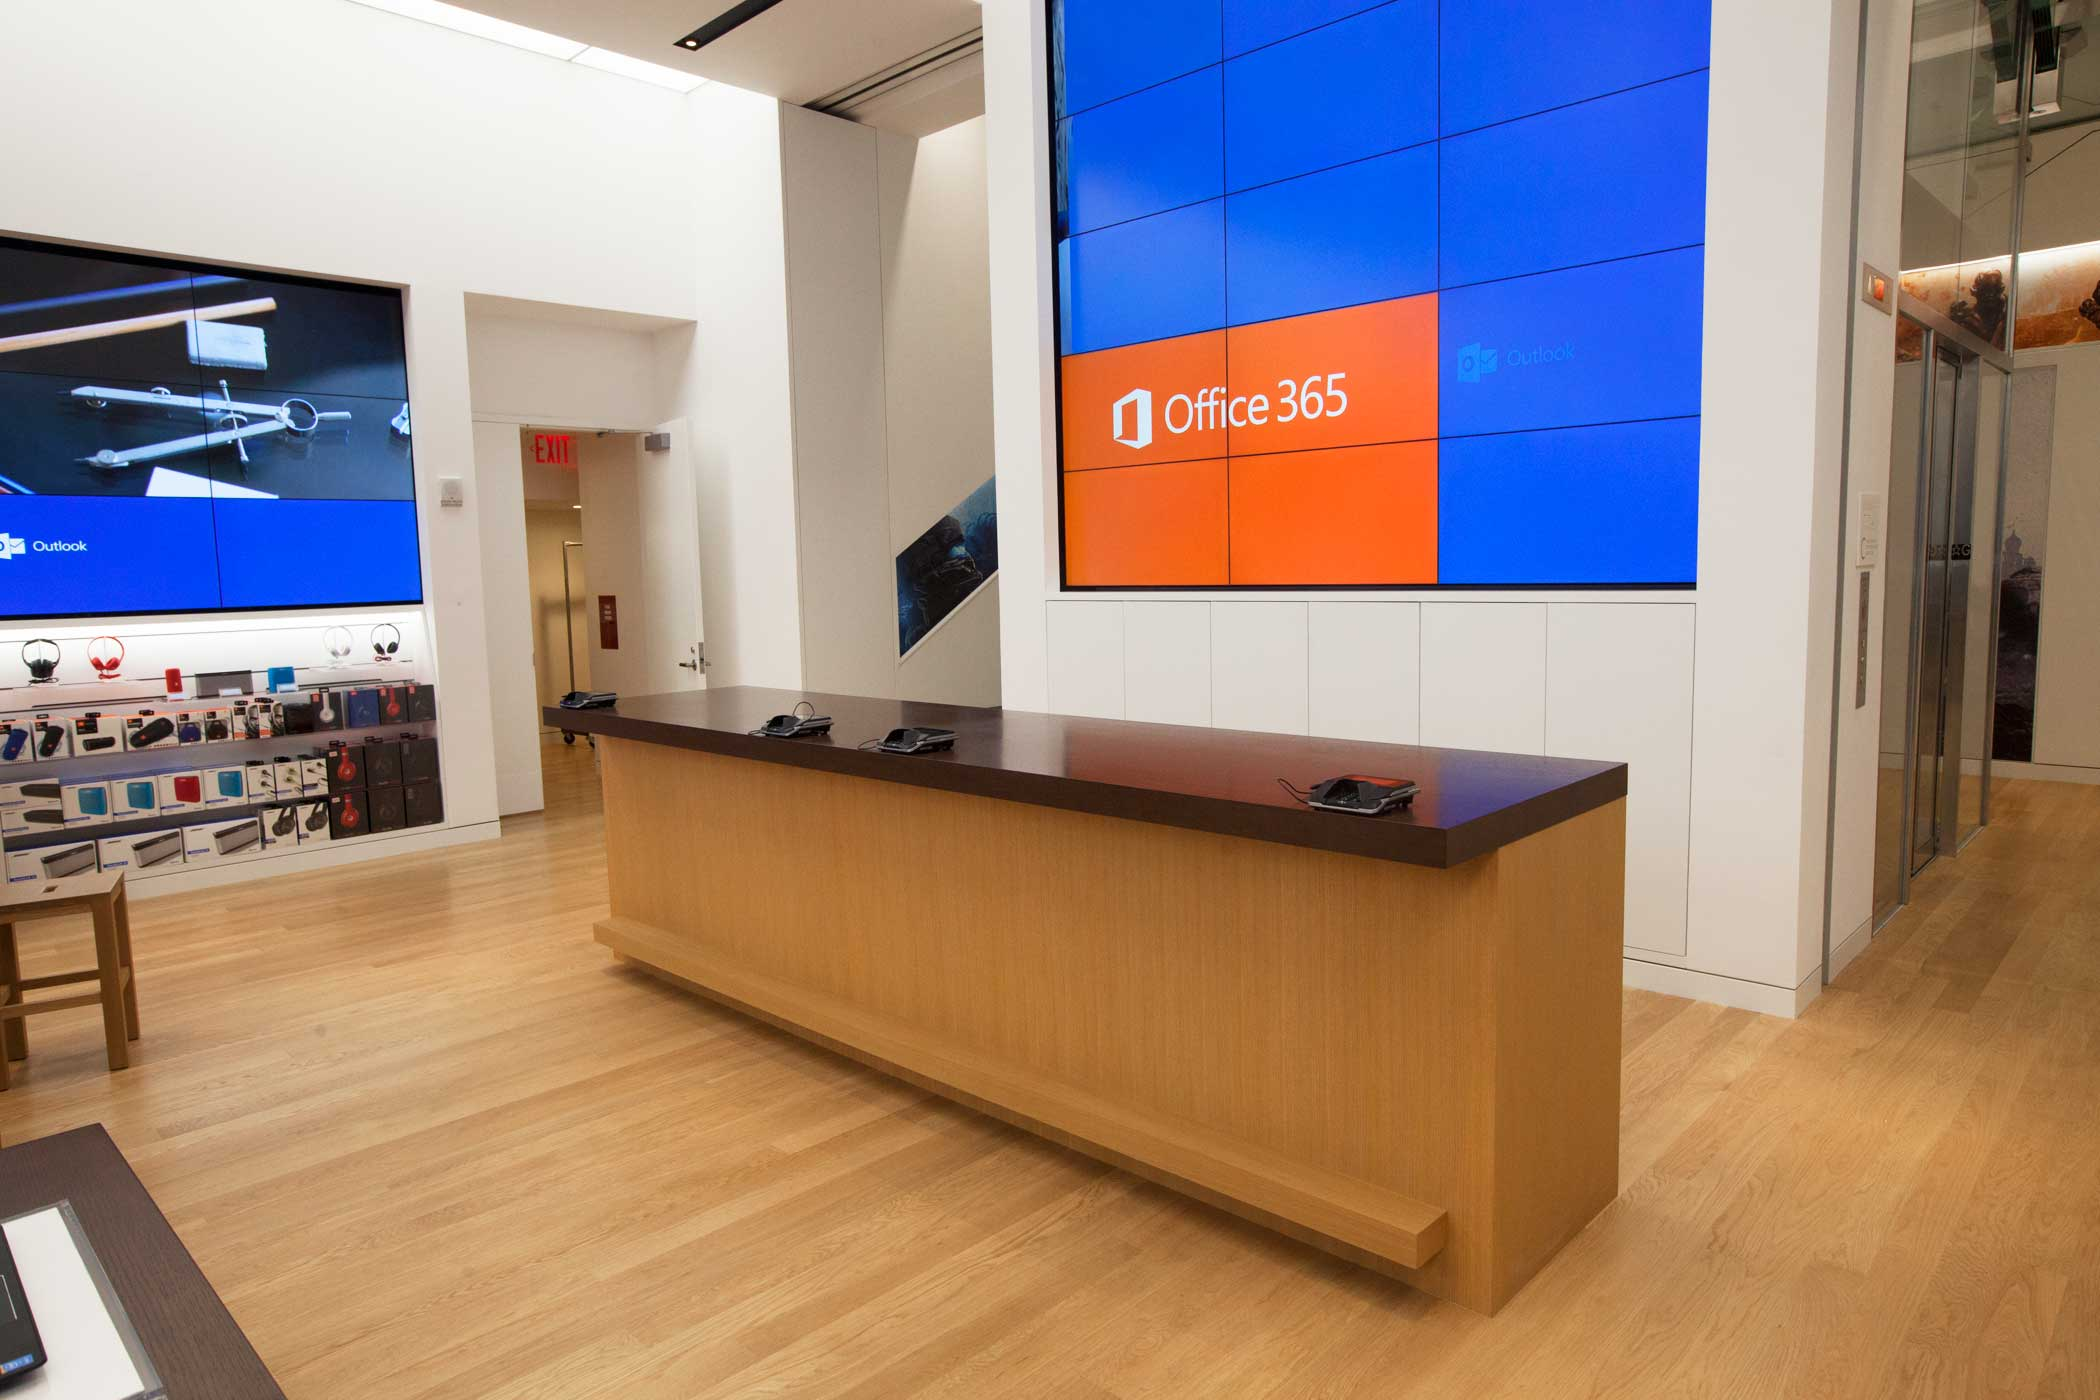 <b>Microsoft Store</b> A help desk and checkout counter.